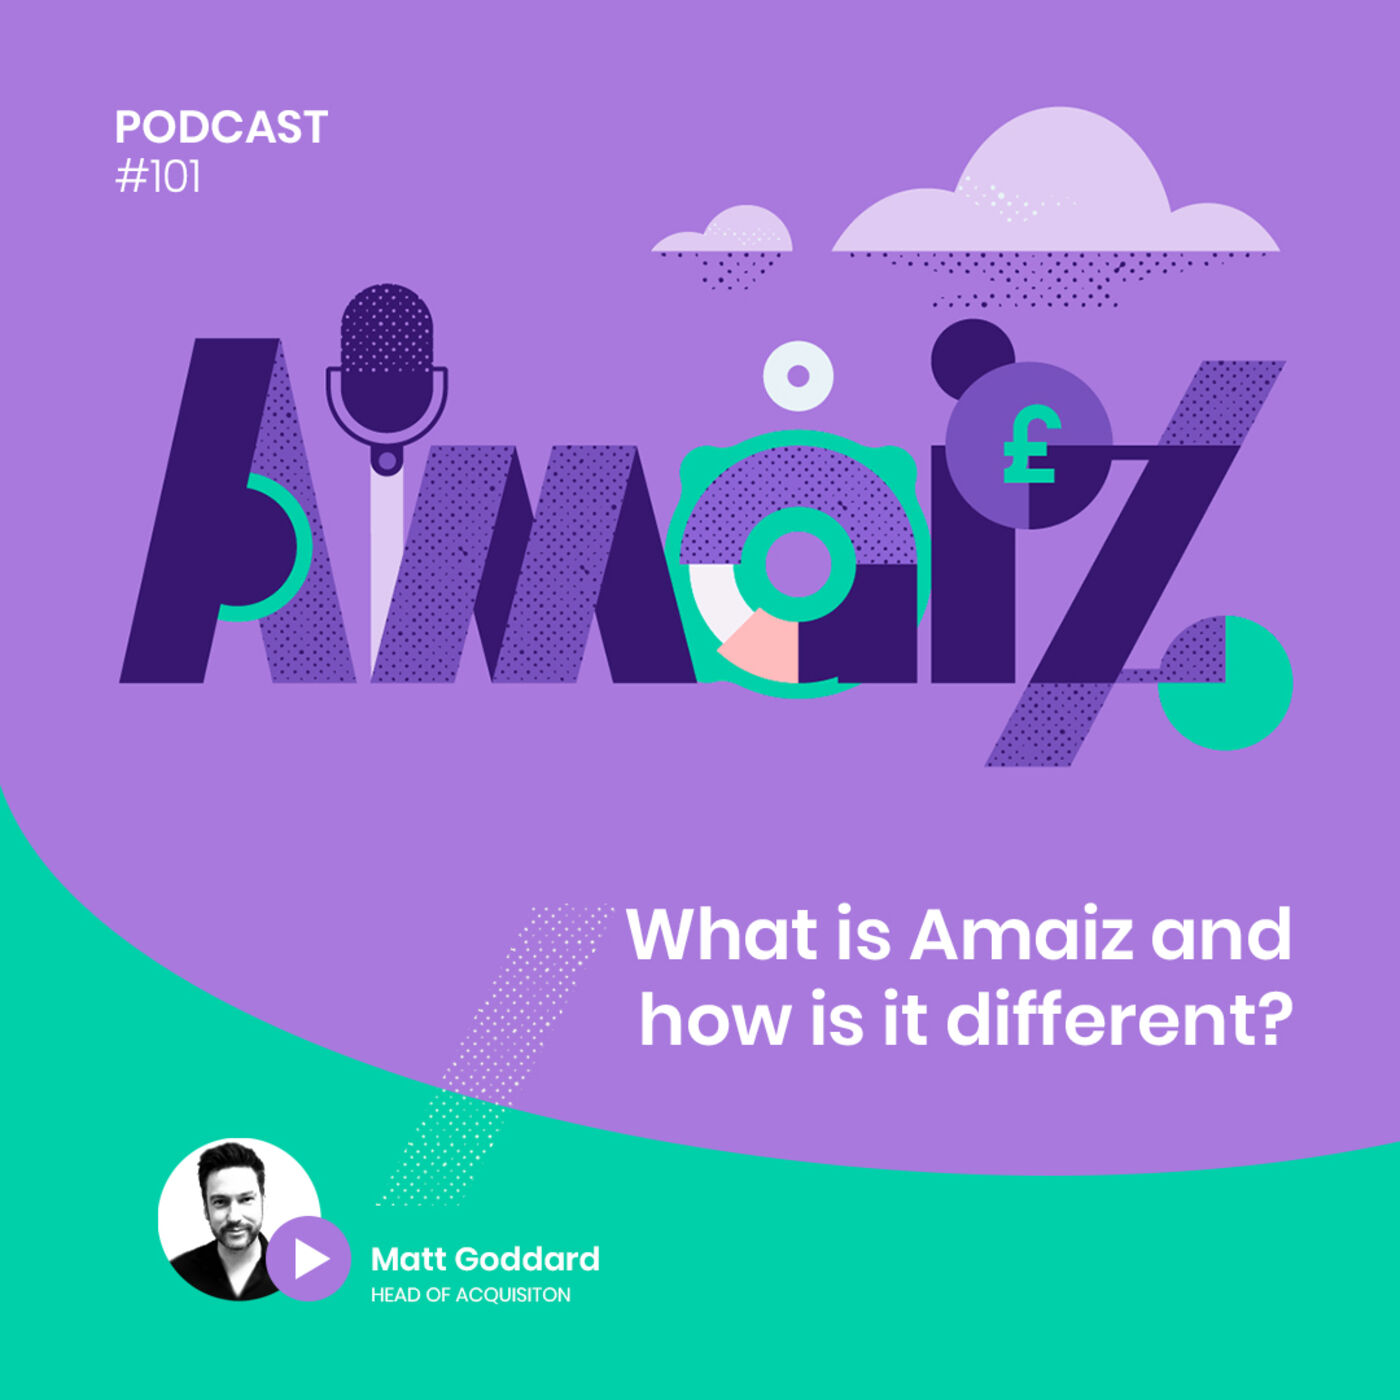 The new banking app: What is Amaiz and how is it diffferent?